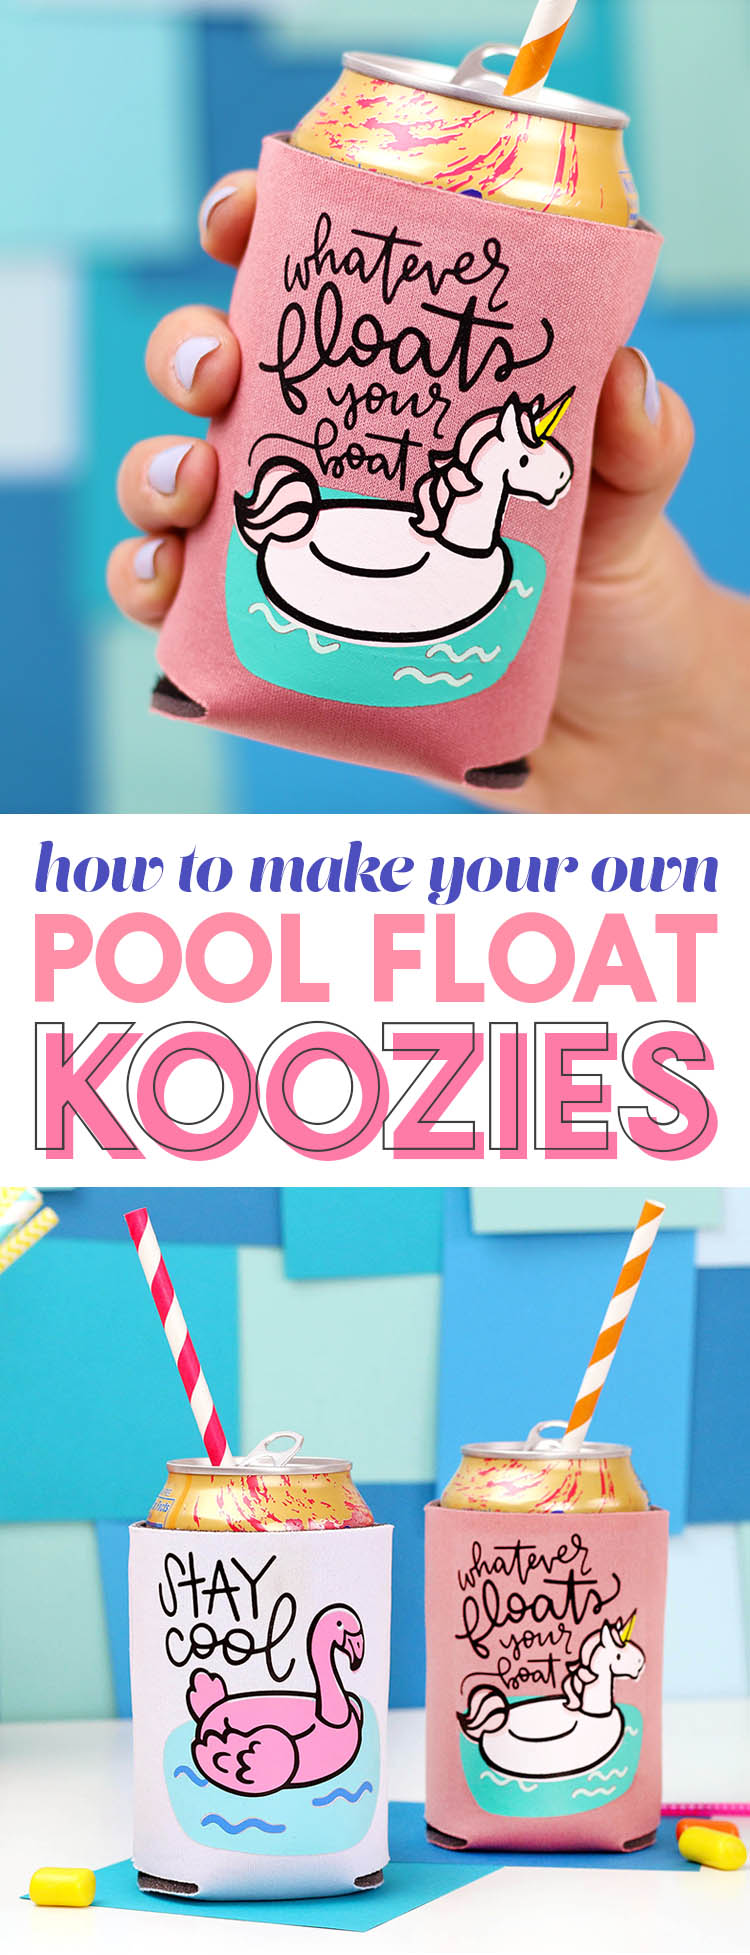 make your own pool float koozies